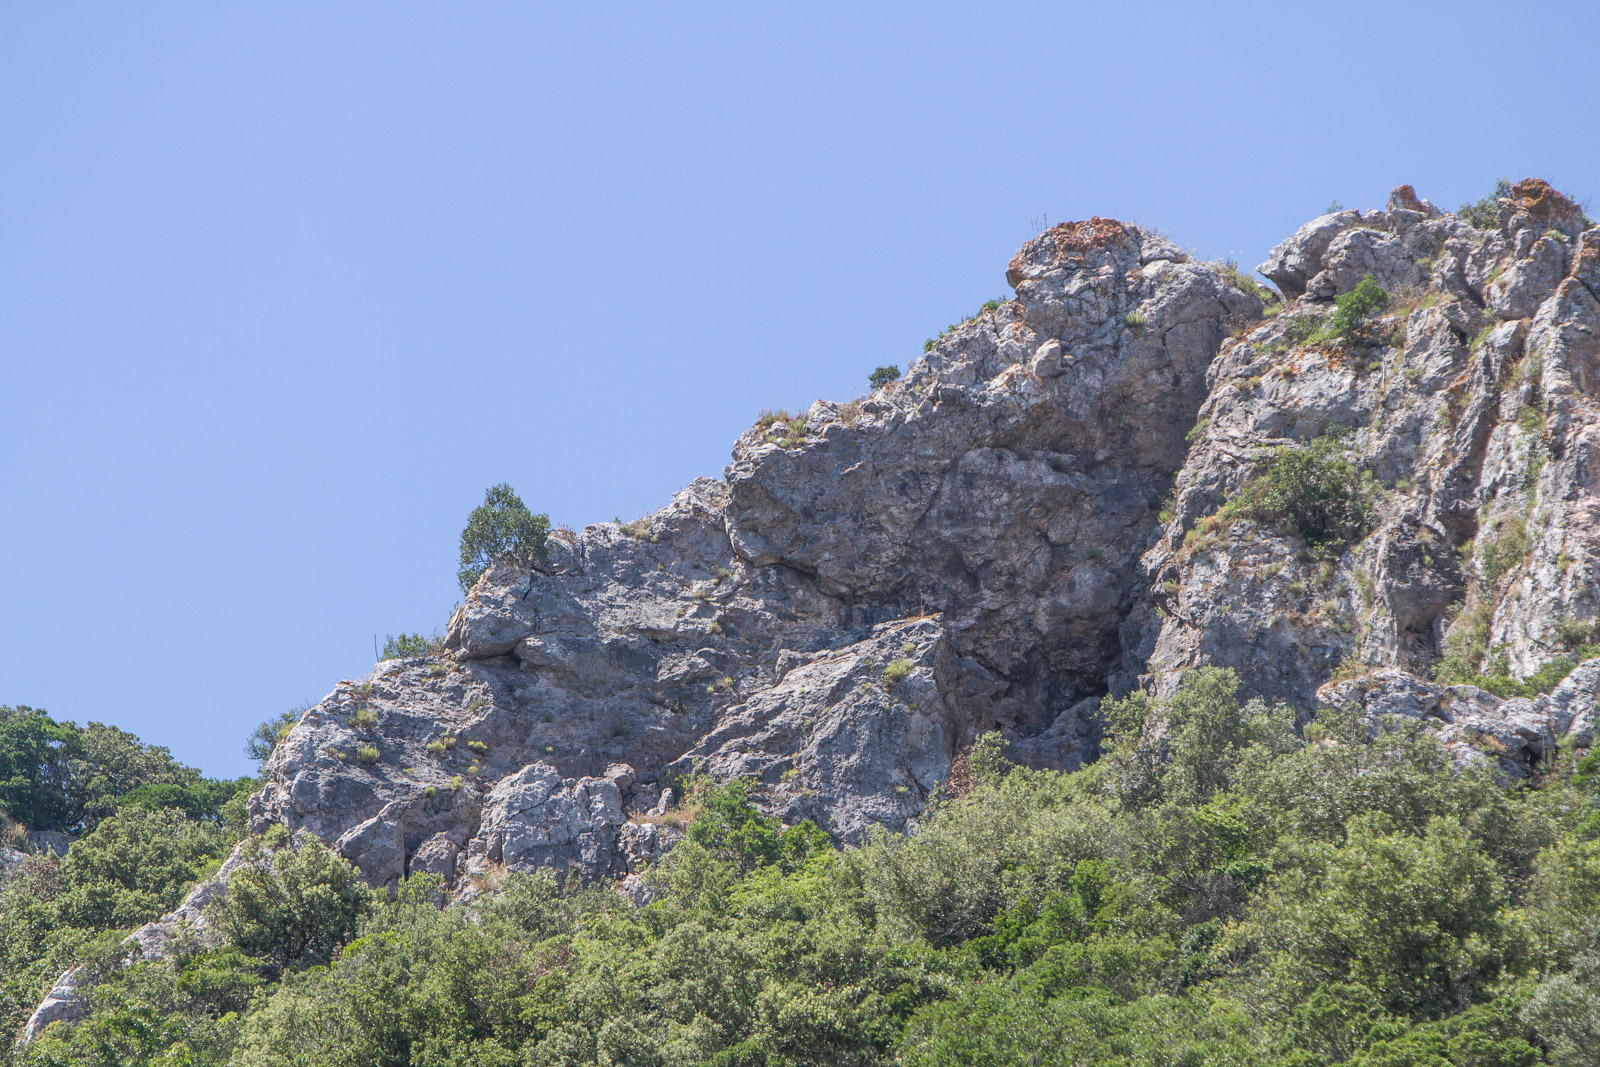 The rocky crags at the top of the rock walls give multiple route options and technique variations.